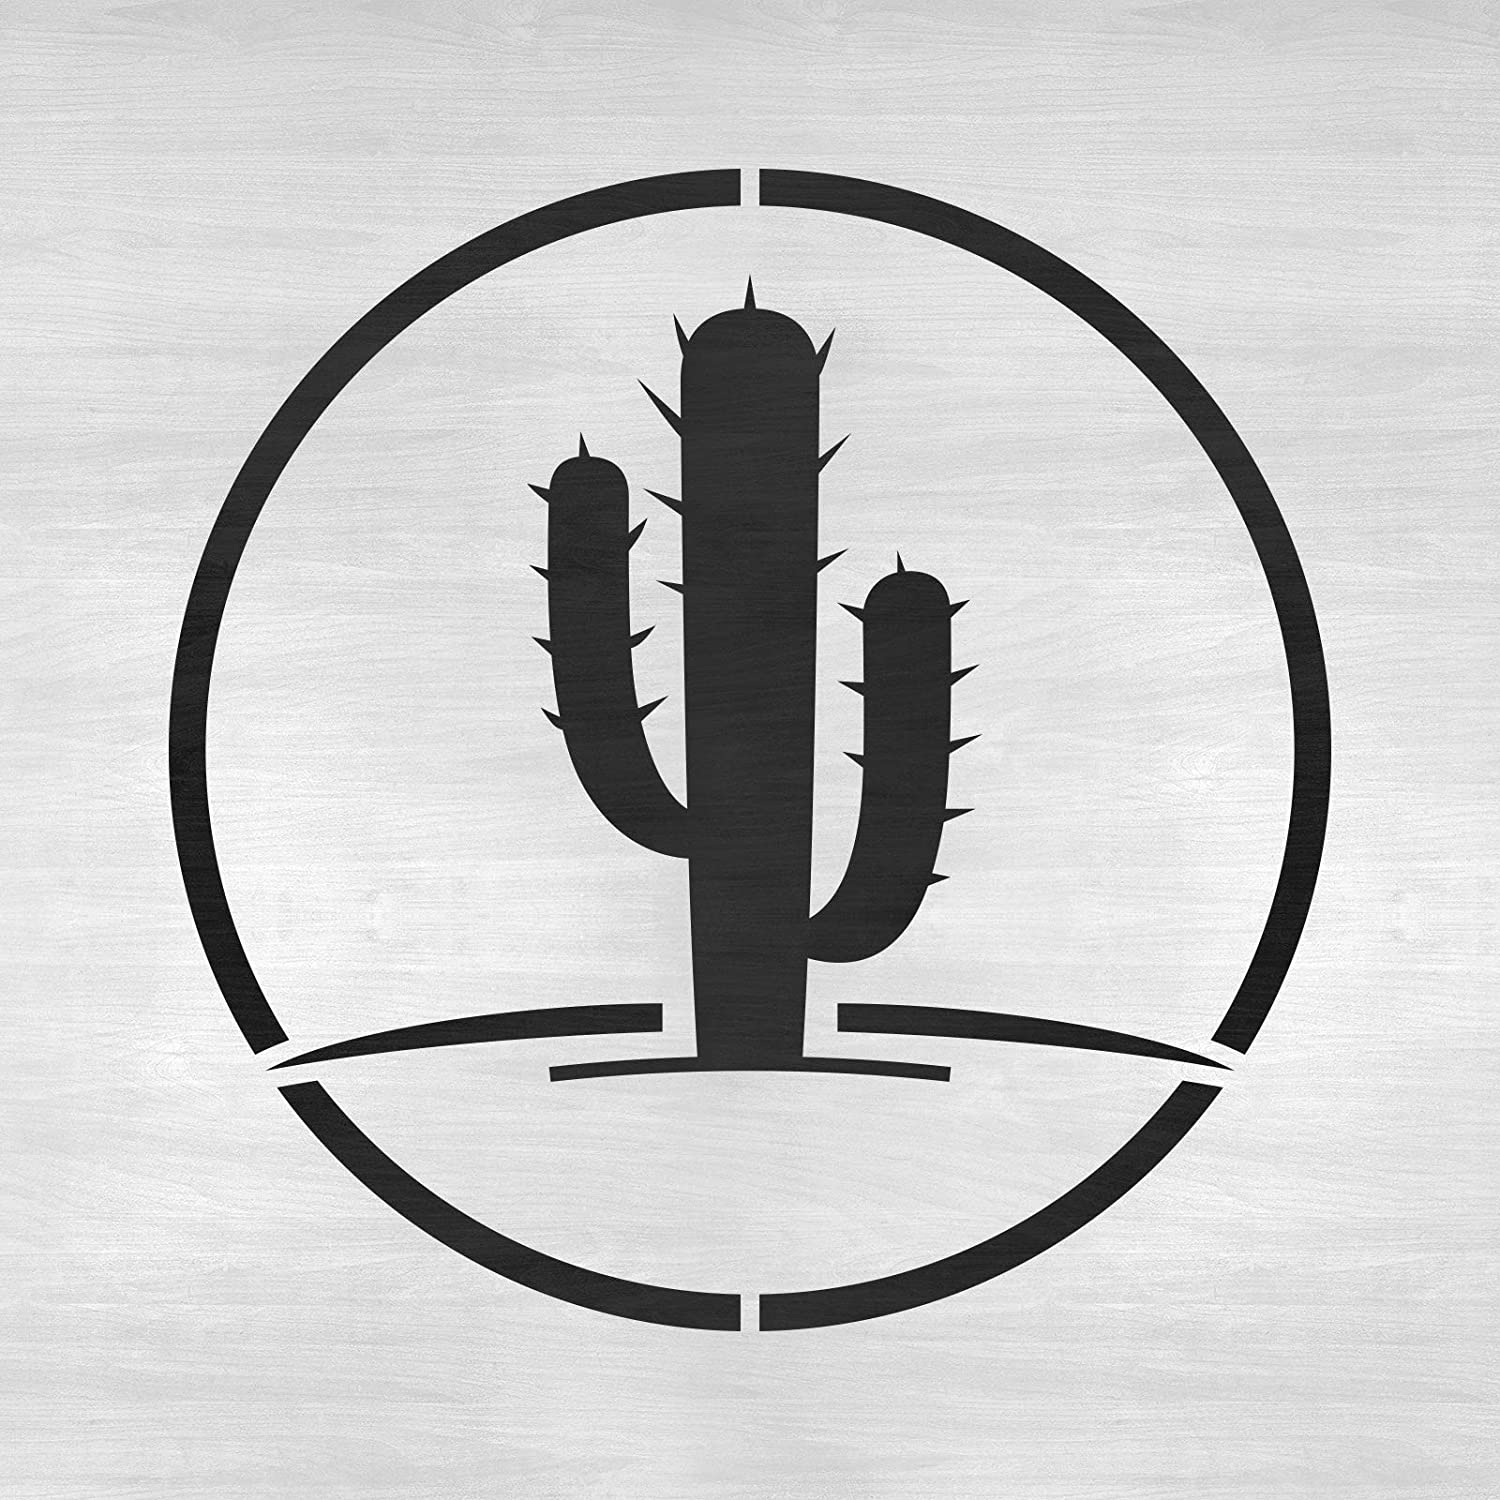 Cactus Stencil Template for Walls and Crafts Reusable Stencils for Painting in Small /& Large Sizes